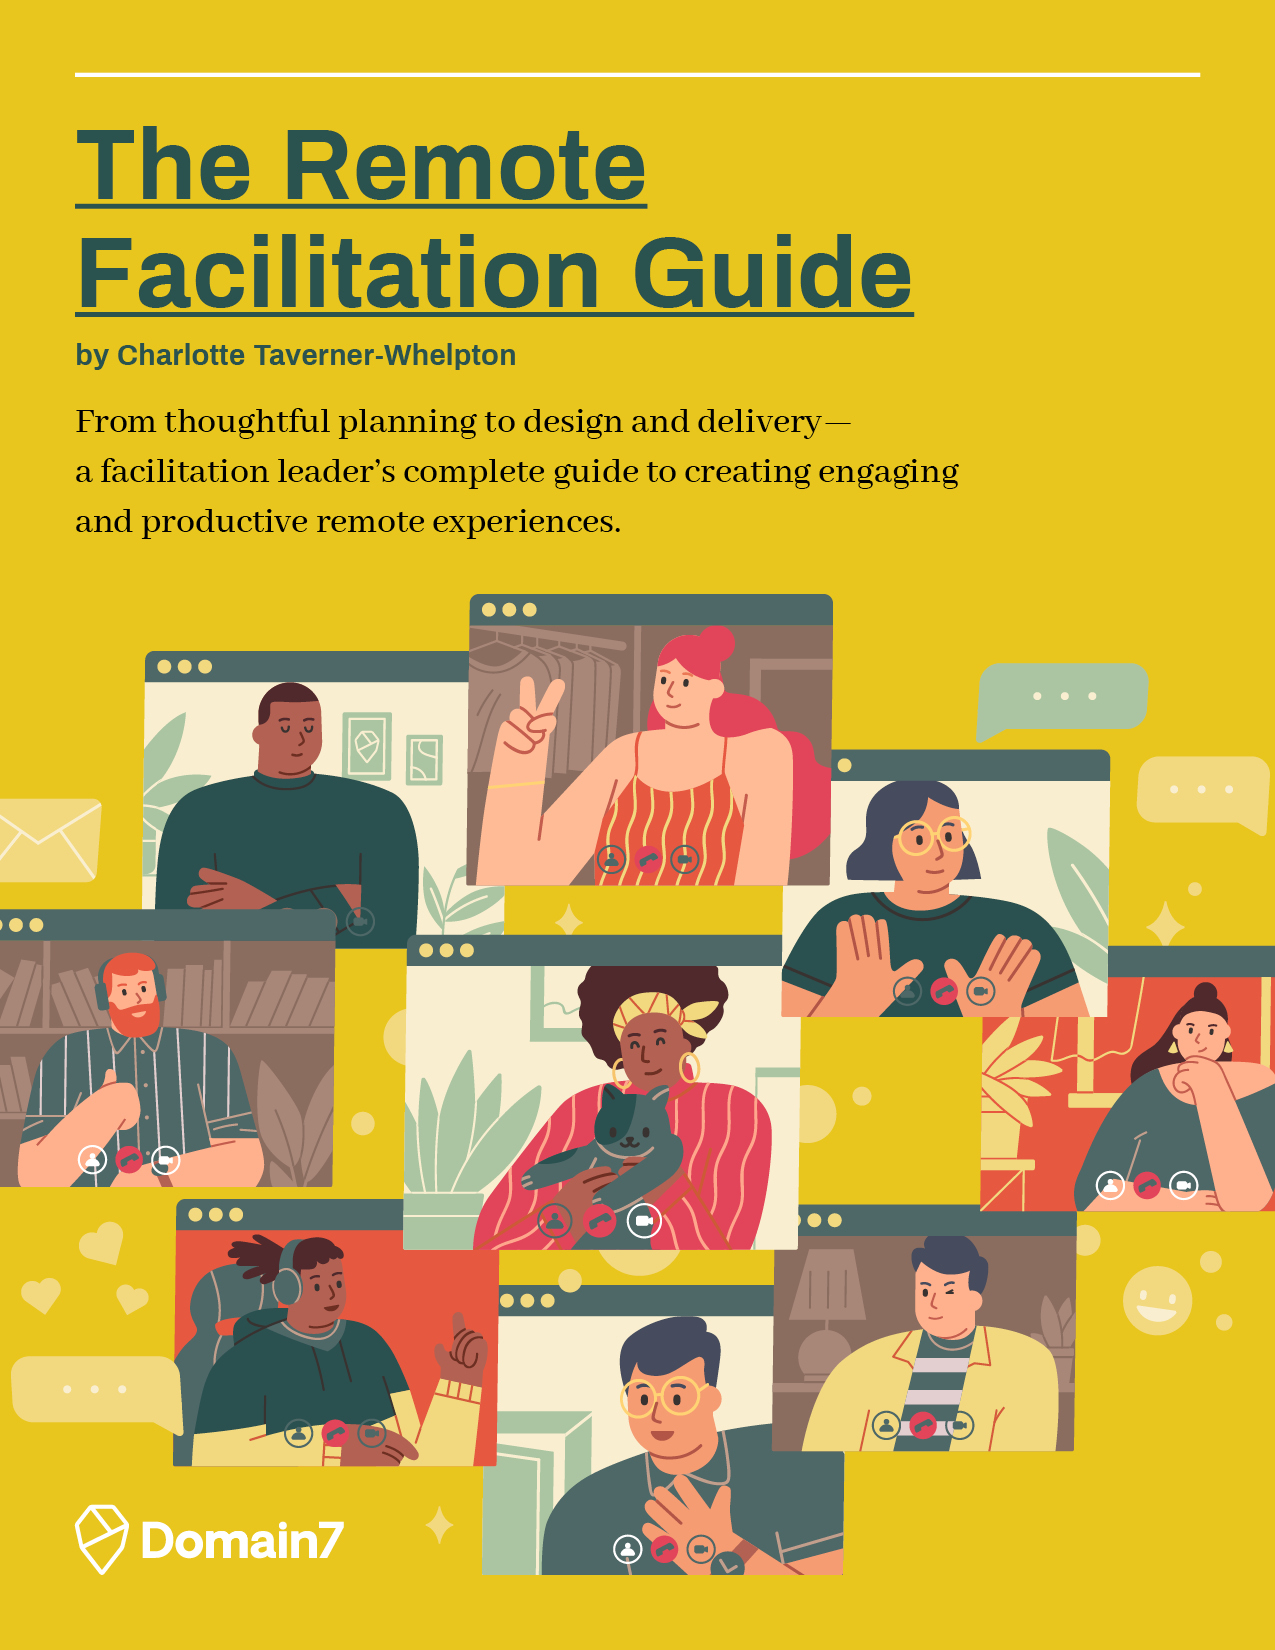 The Remote Facilitation Guide cover art